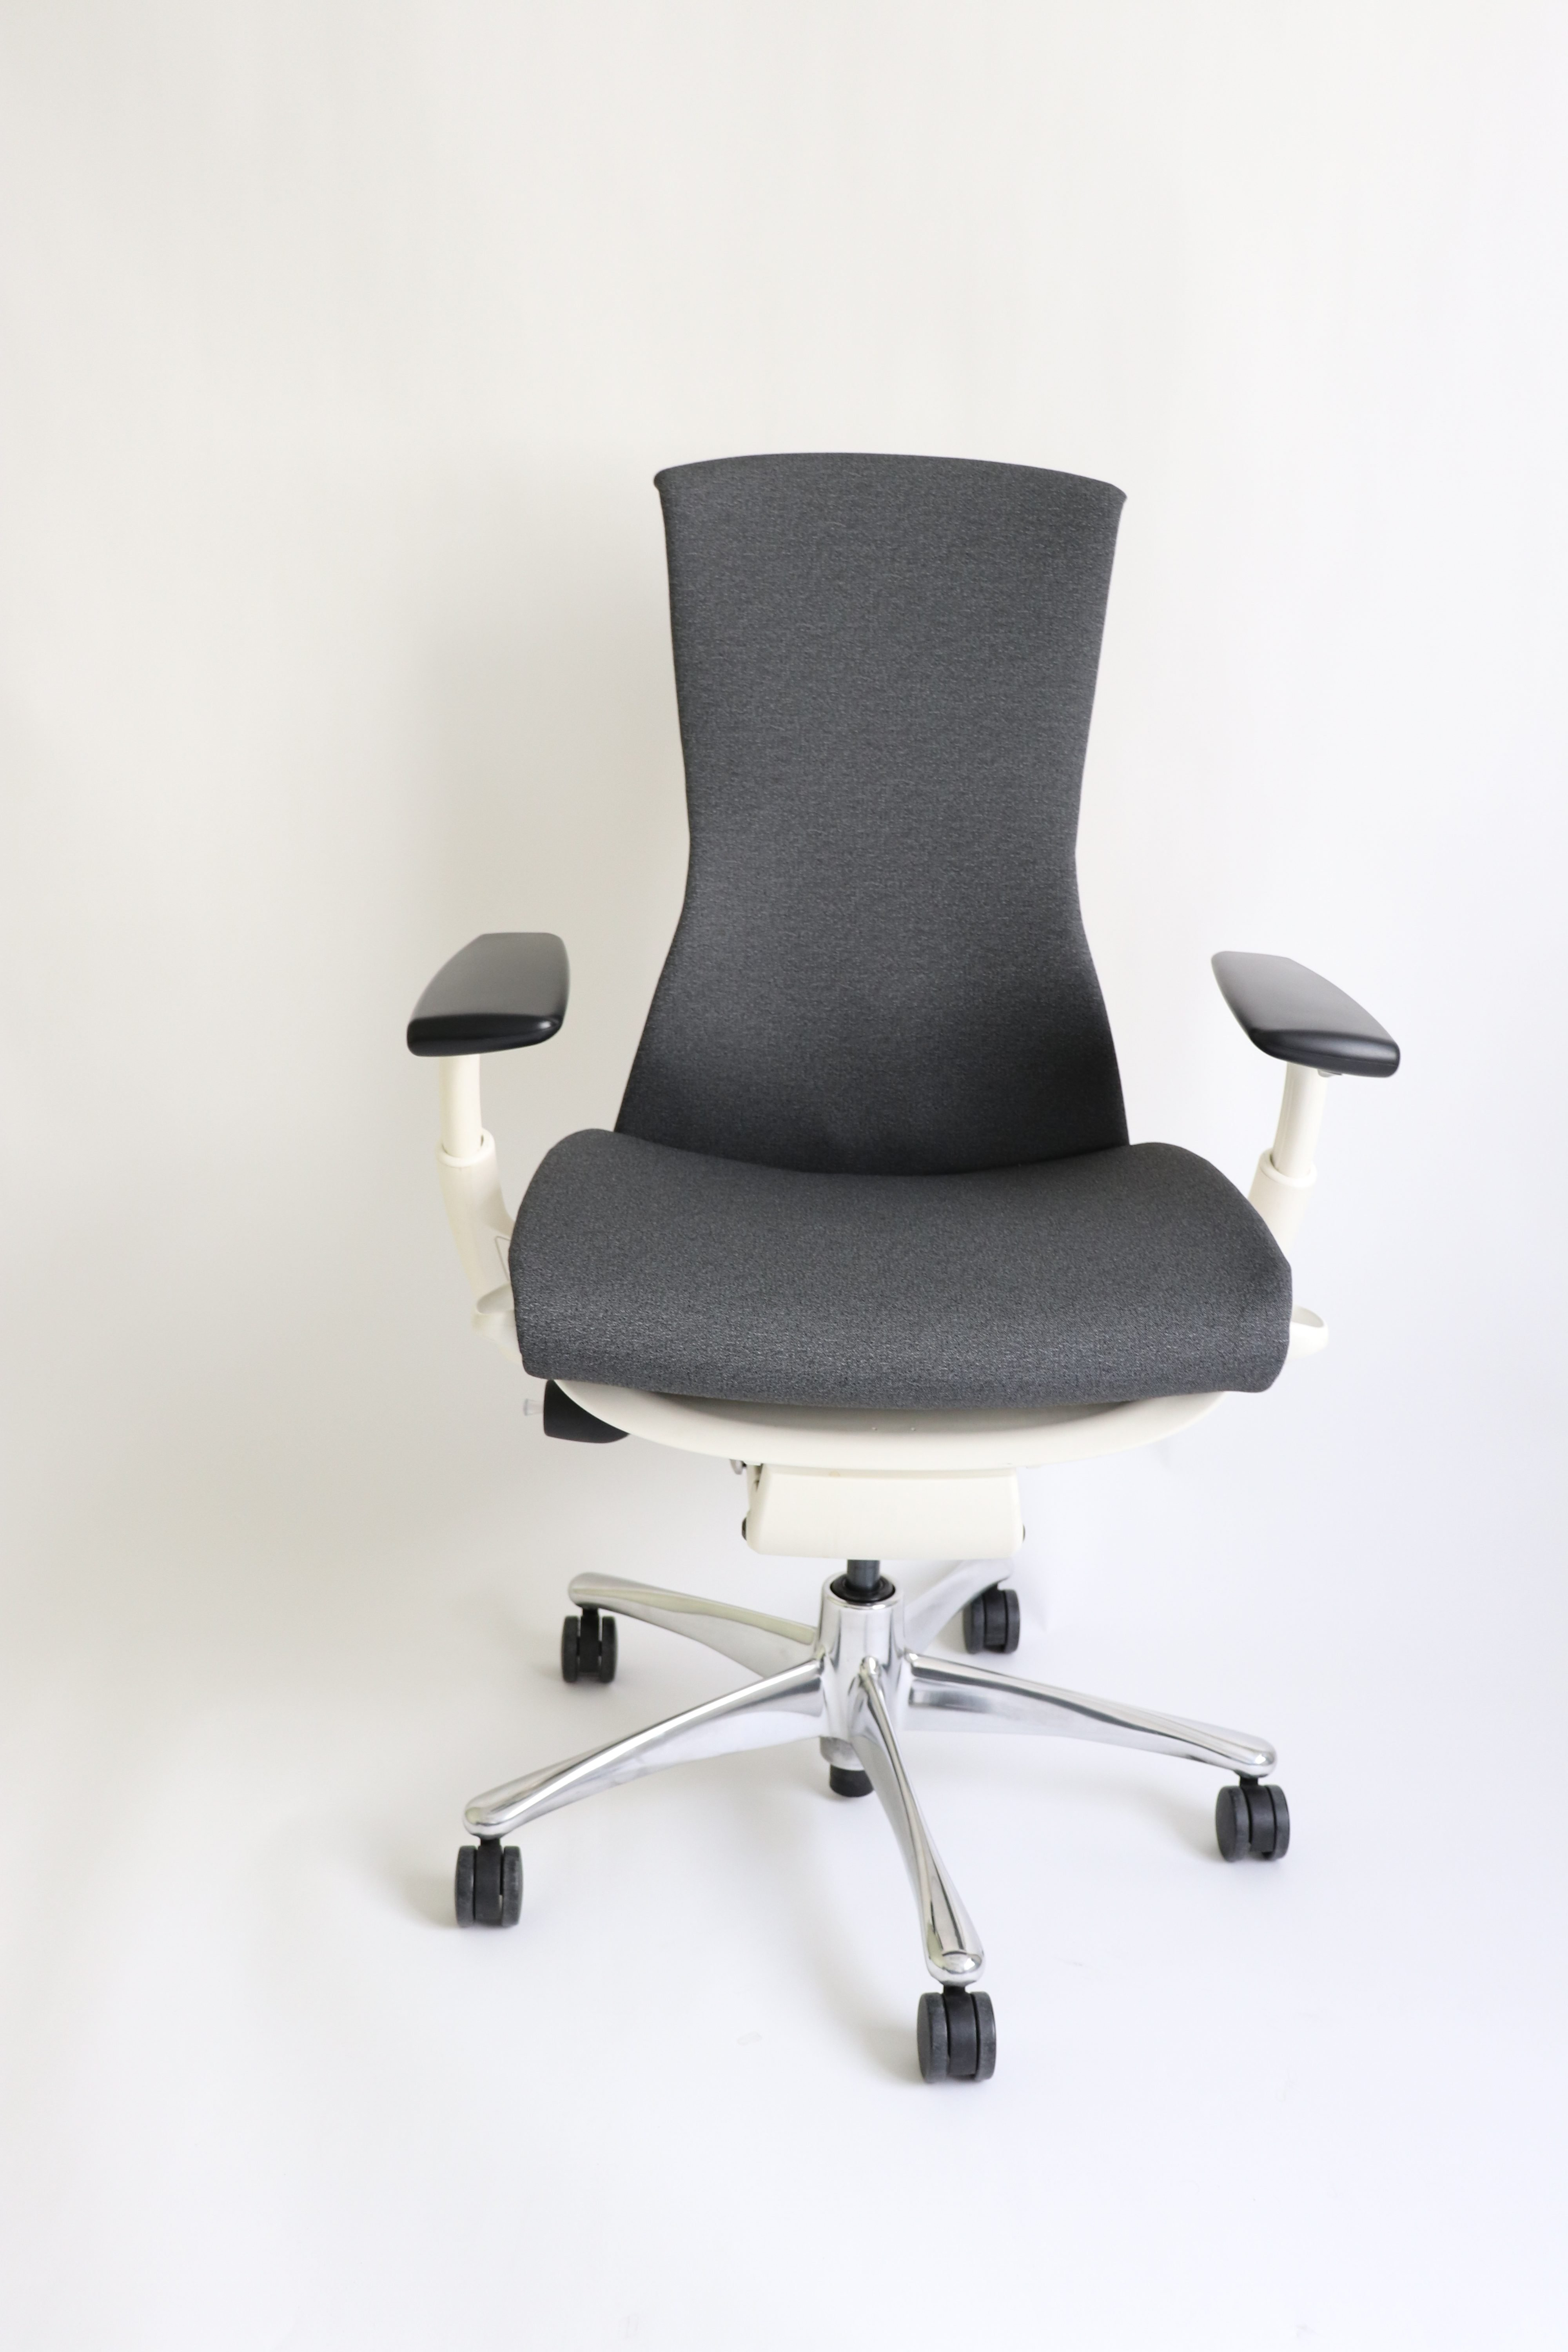 office shop fabric miller herman mulberry base ergonomic front furniture scene chairs embody graphite chair frame